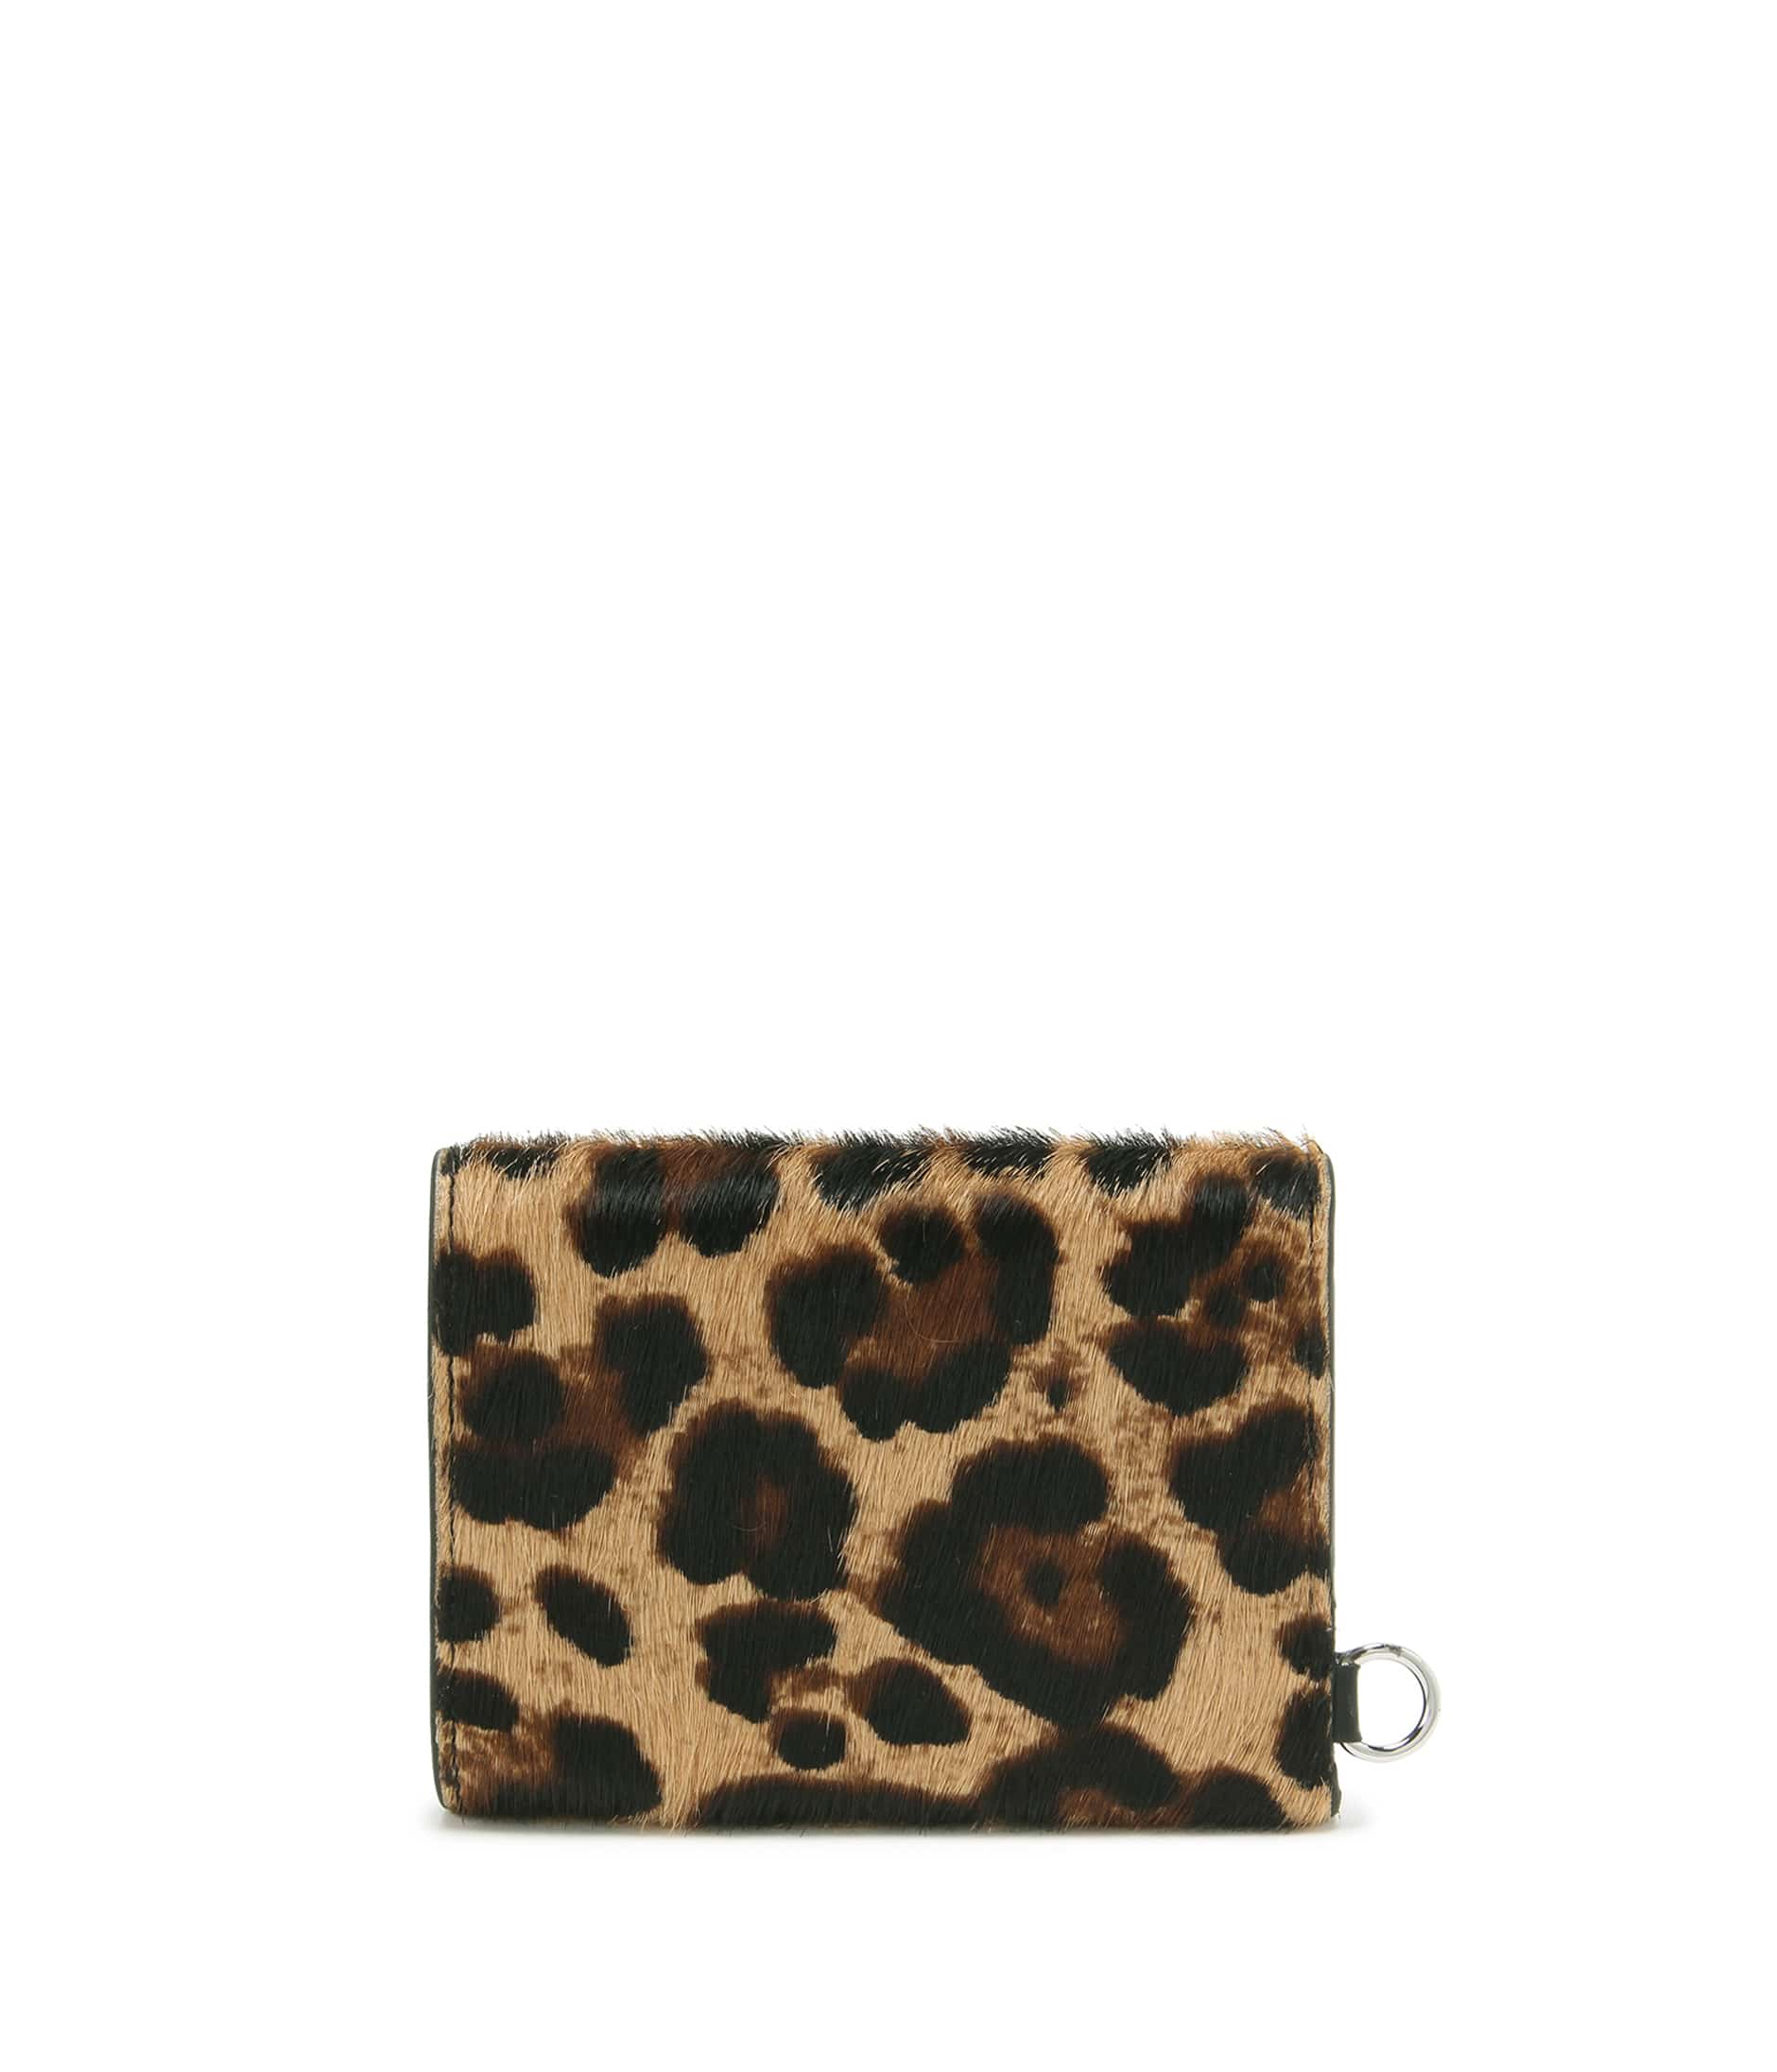 FOLDED WALLET WITH STUDS 詳細画像 LEOPARD 2